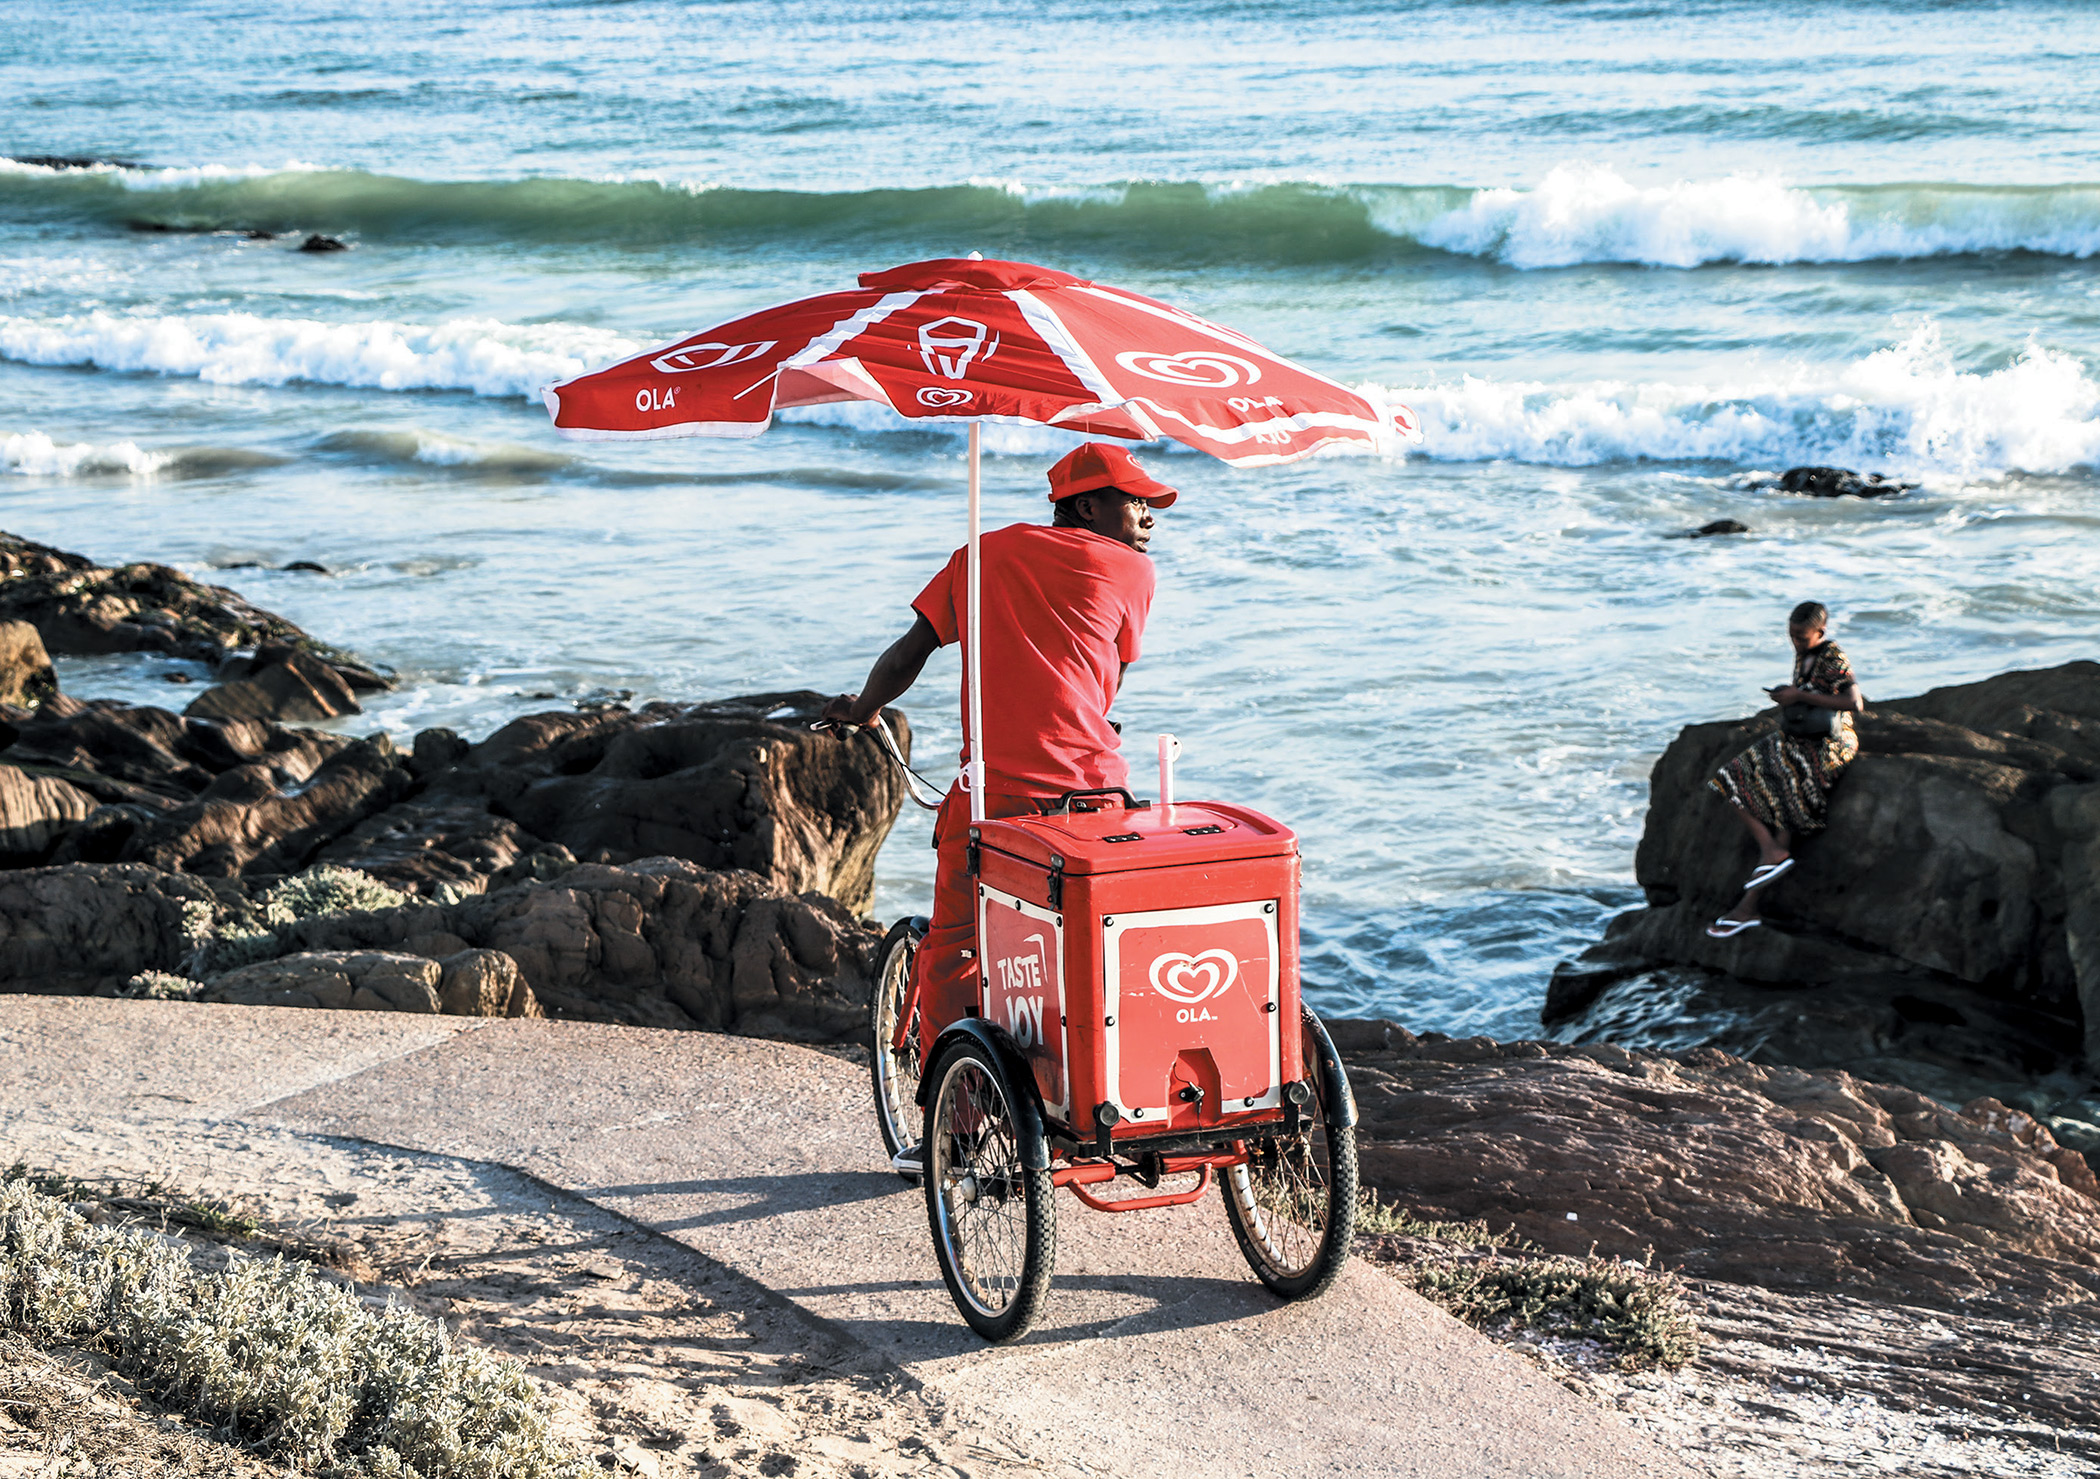 A man sells ice cream from an Ola cart in Bloubergstrand, South Africa. Ola is owned by Unilever. Rather than giving transnational corporations more power, a Global Green New Deal could be partly financed through climate reparations.